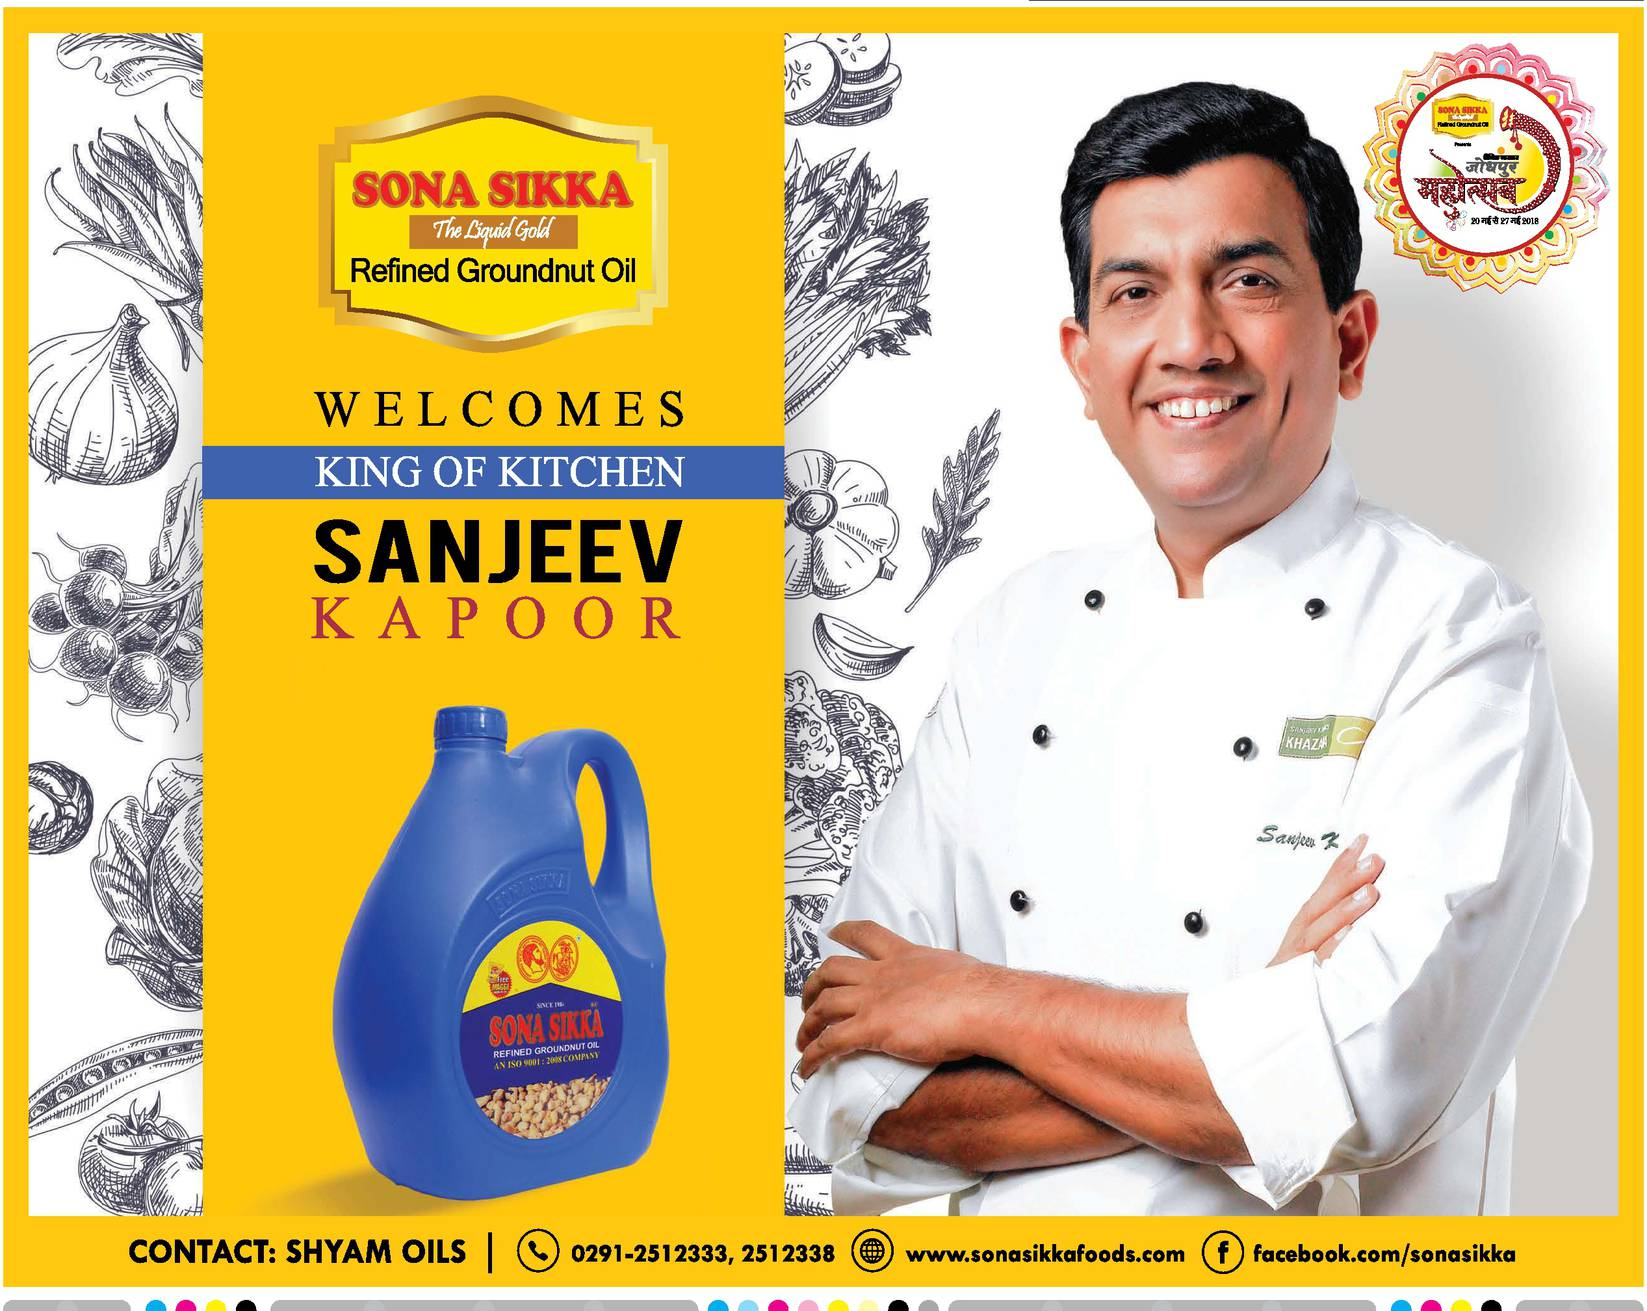 Sona Sikka Refined Groundnut Oil Welcomes King Of Kitchen Sanjeev ...